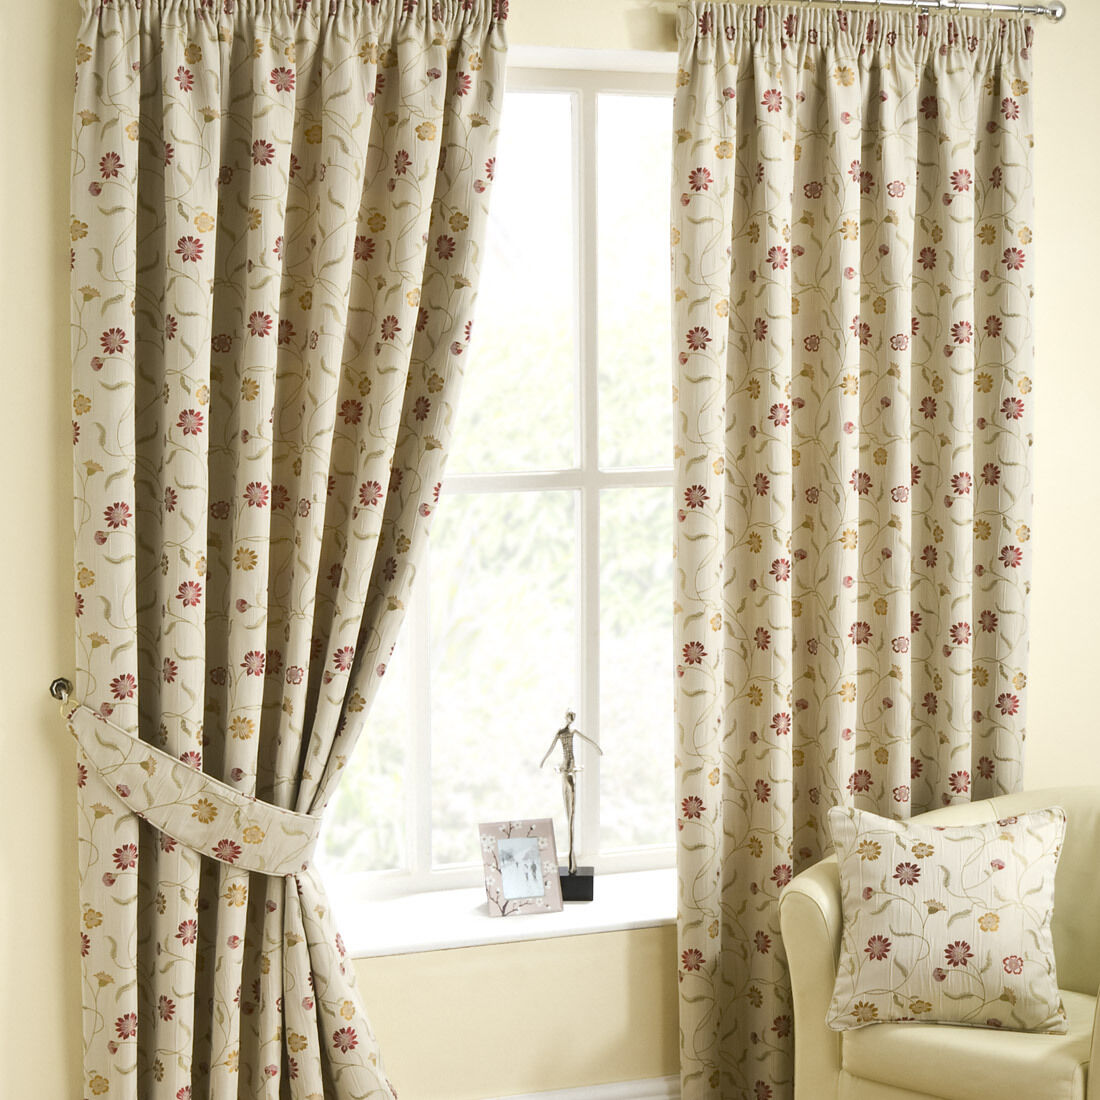 Isla Chintz Luxury Floral Design Fully Lined By Curtains By Lined Belfield baac55